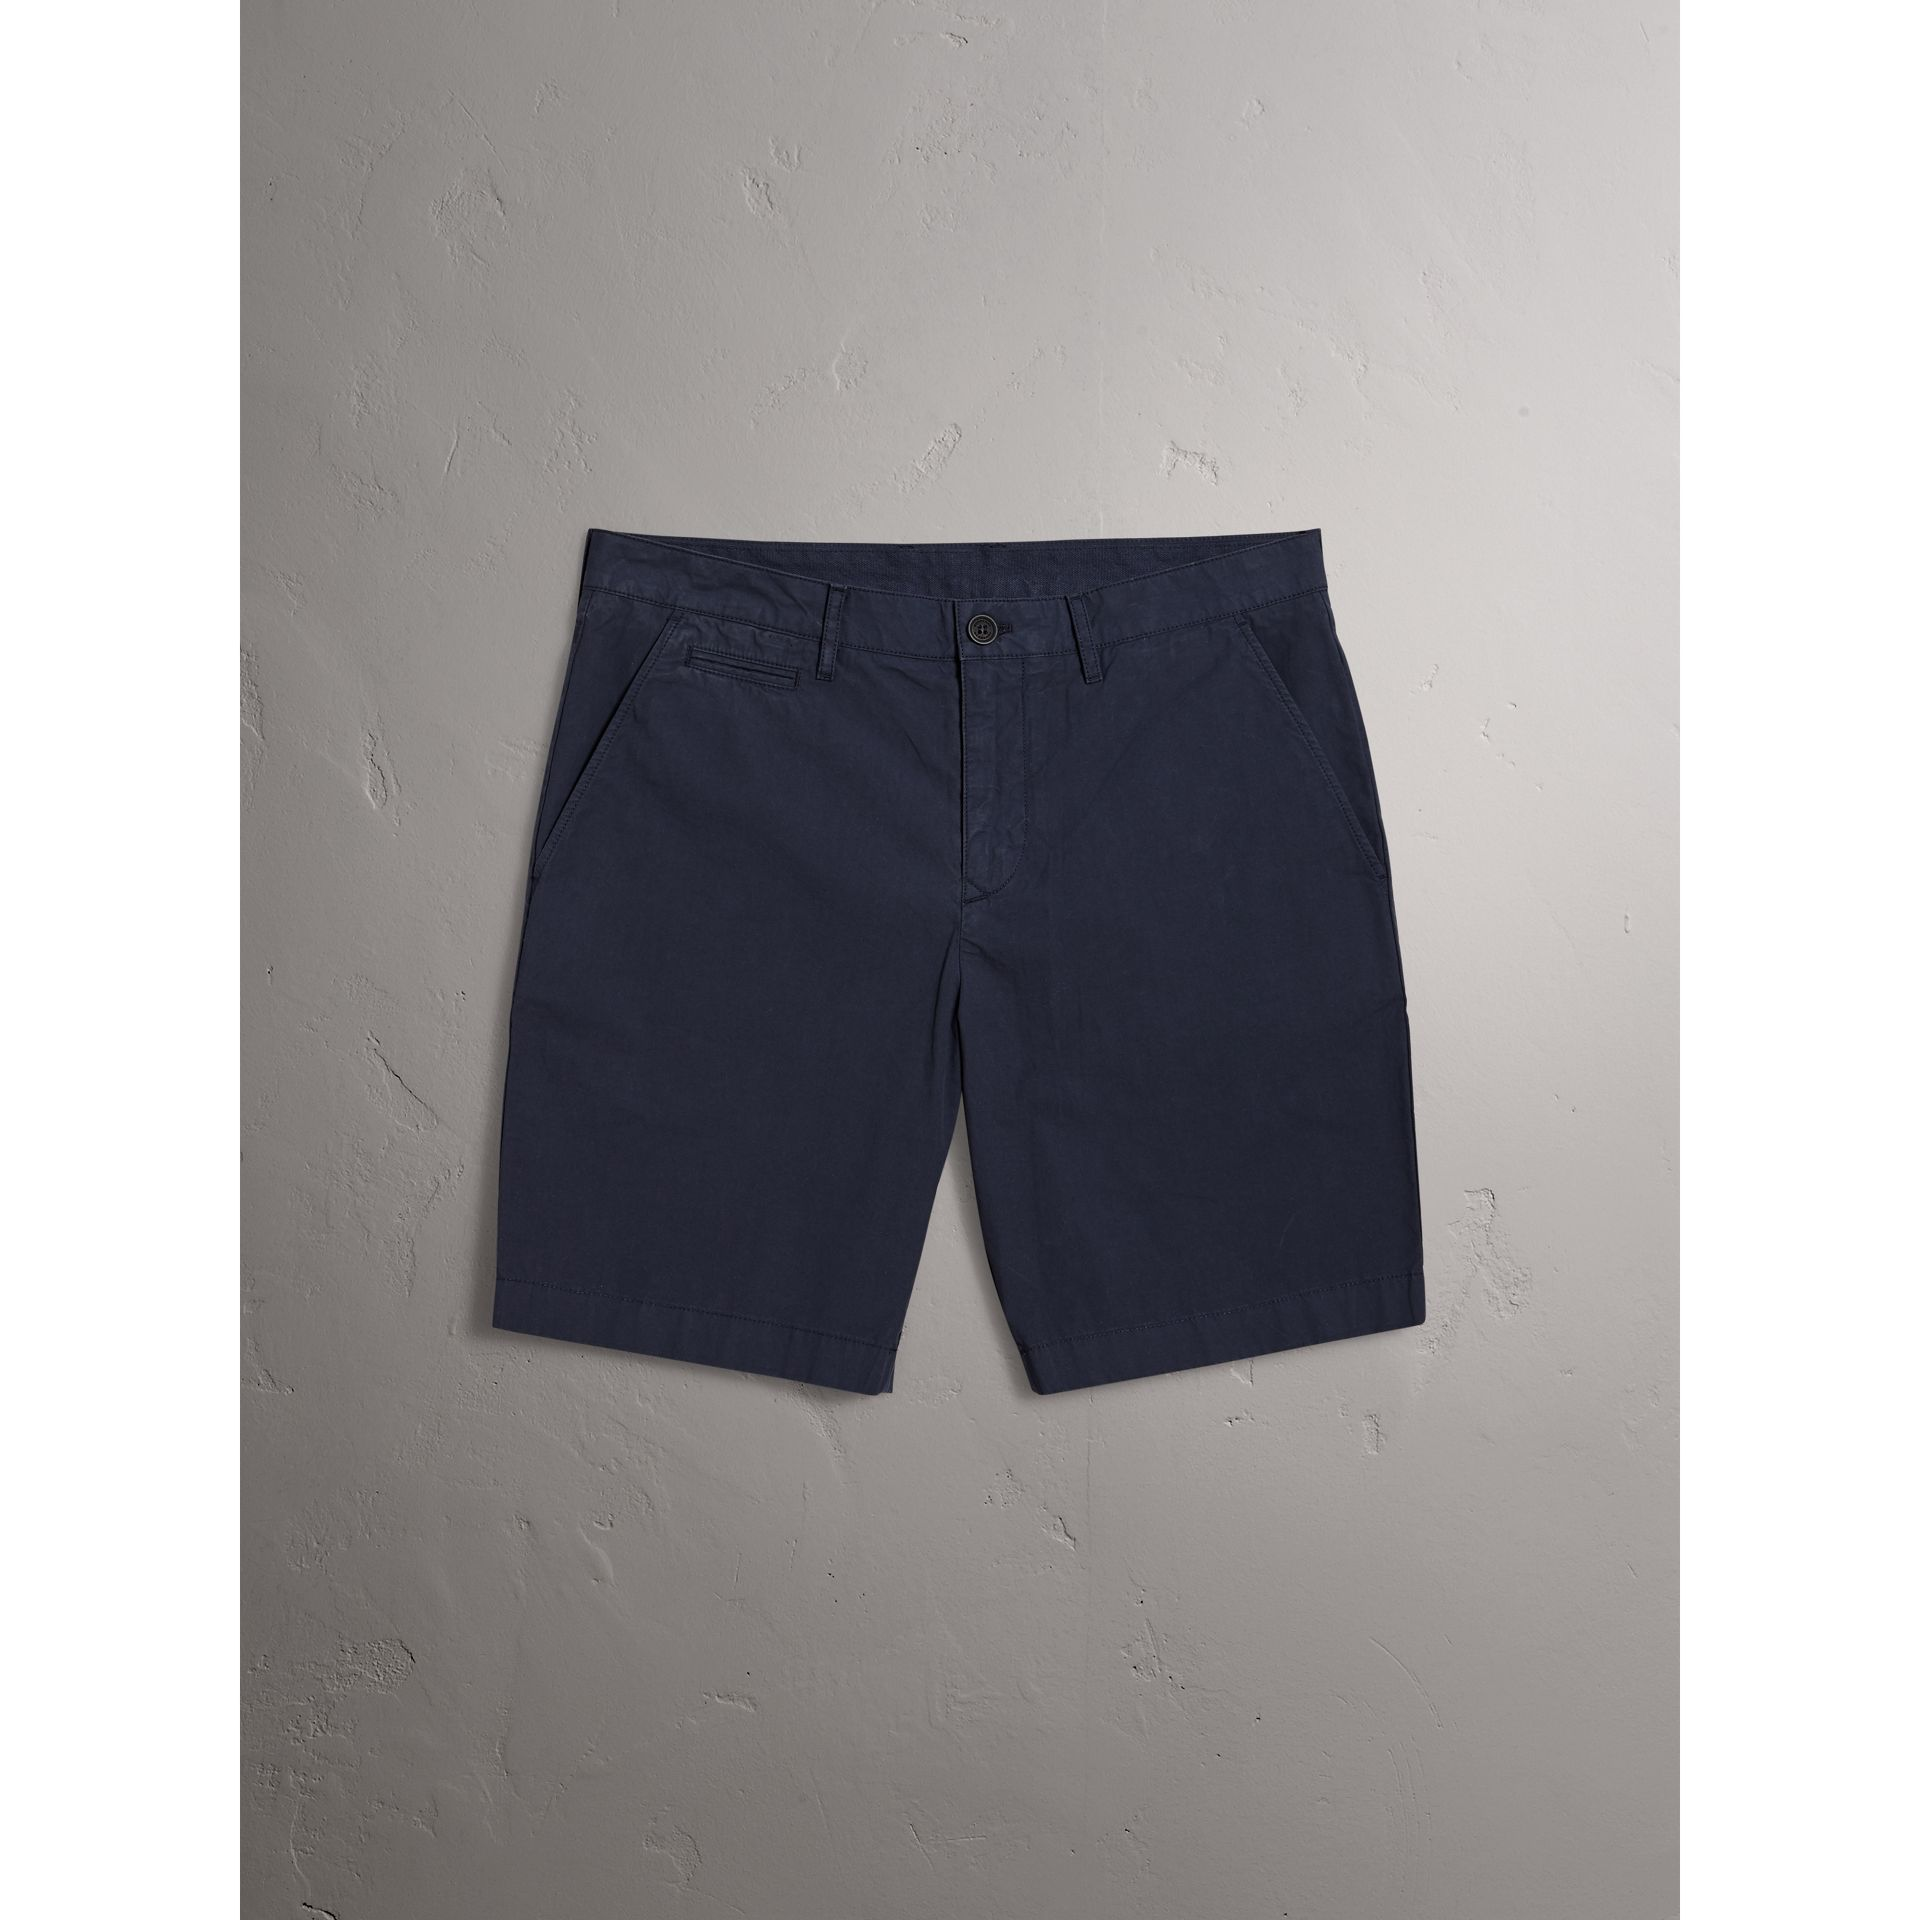 Cotton Poplin Chino Shorts in Indigo - Men | Burberry Australia - gallery image 3